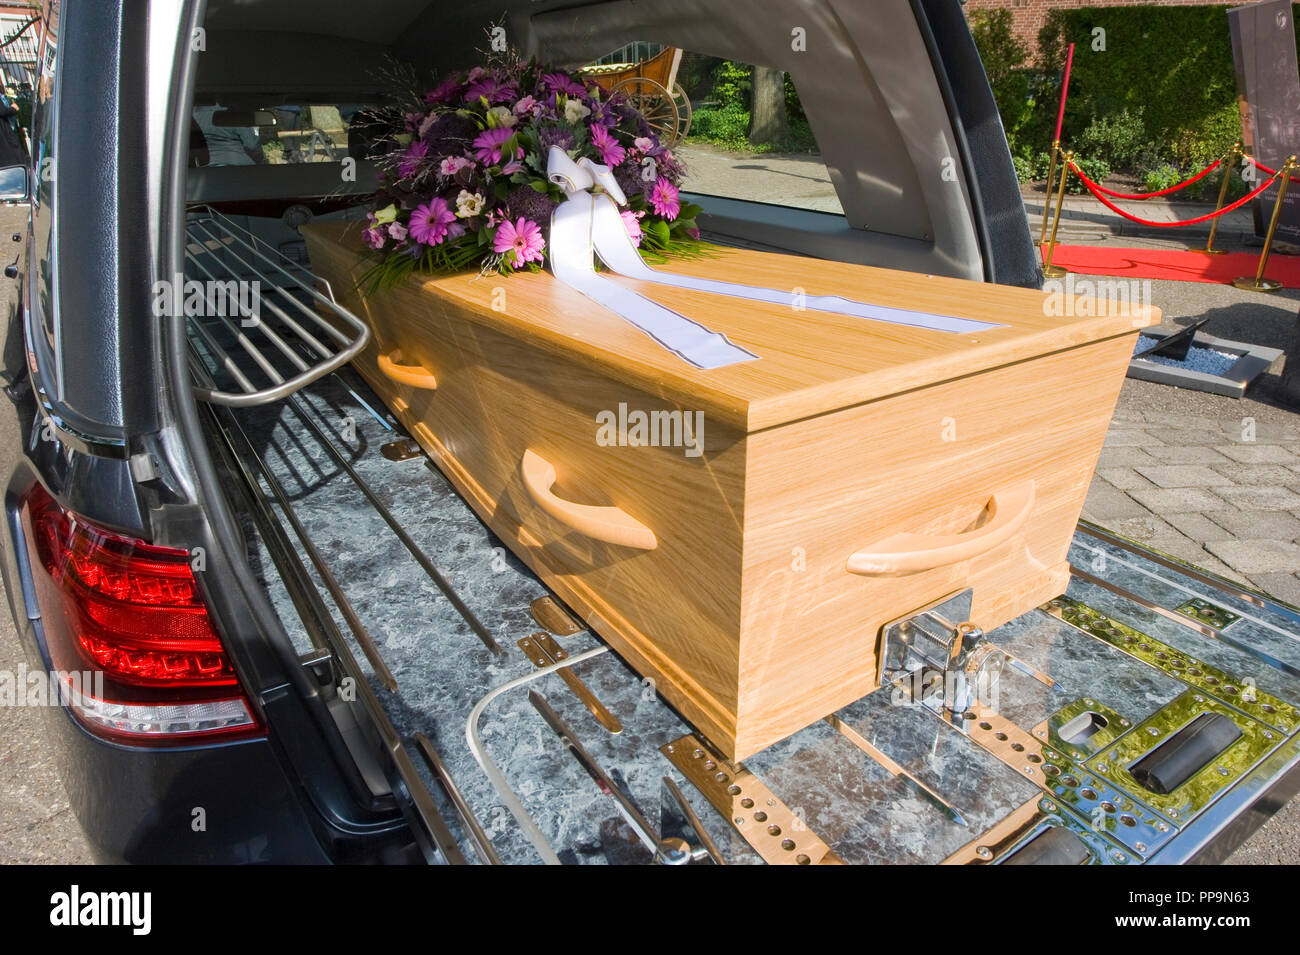 A Coffin With A Flower Arrangement In A Funeral Car Stock Photo